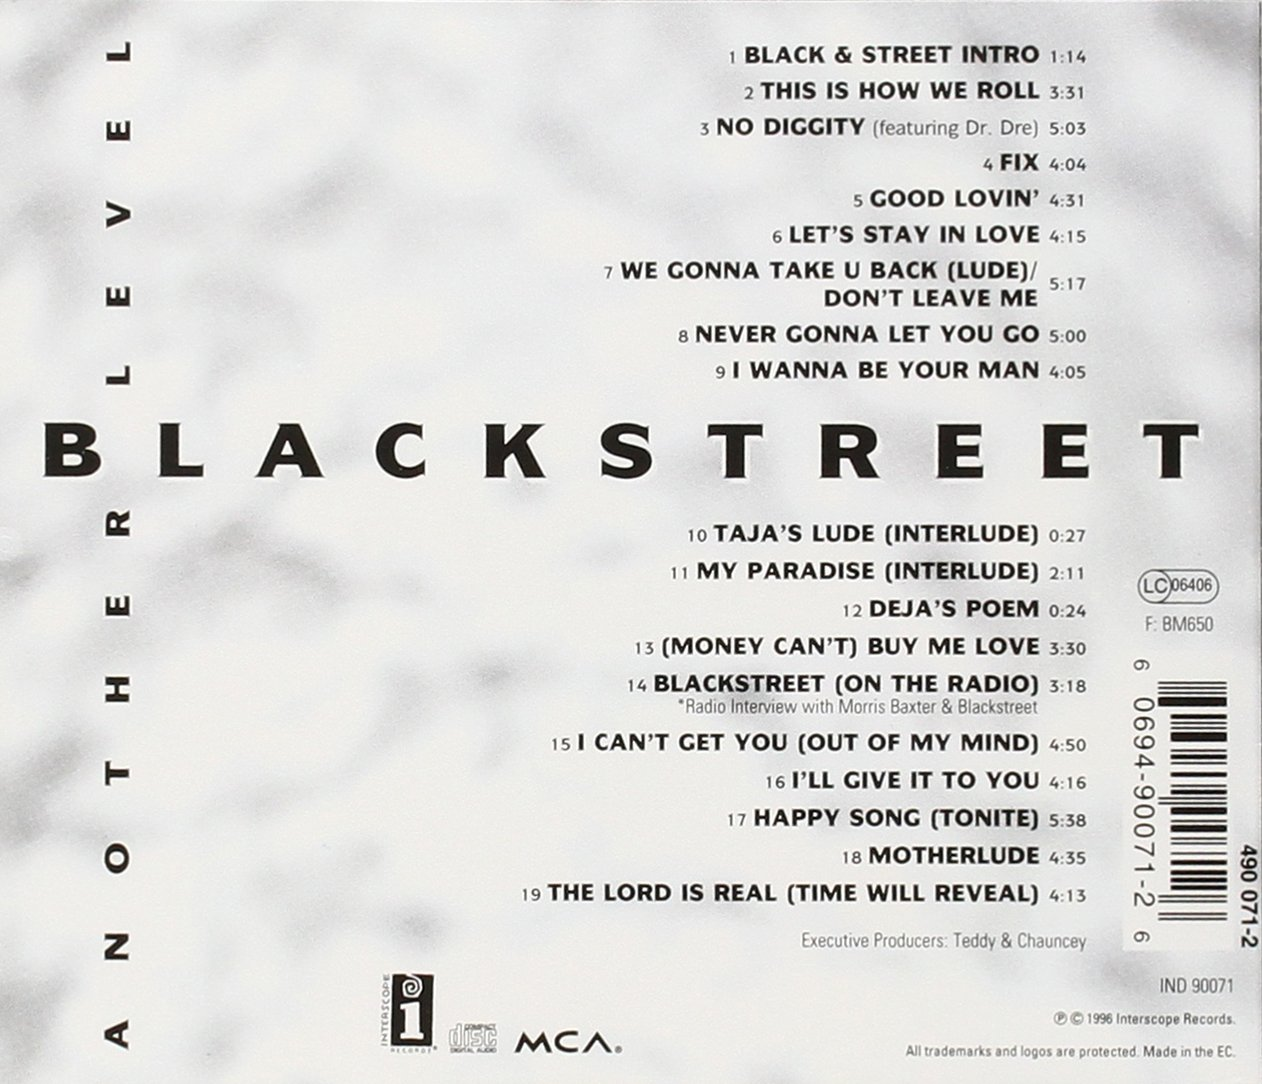 Another level | blackstreet – download and listen to the album.